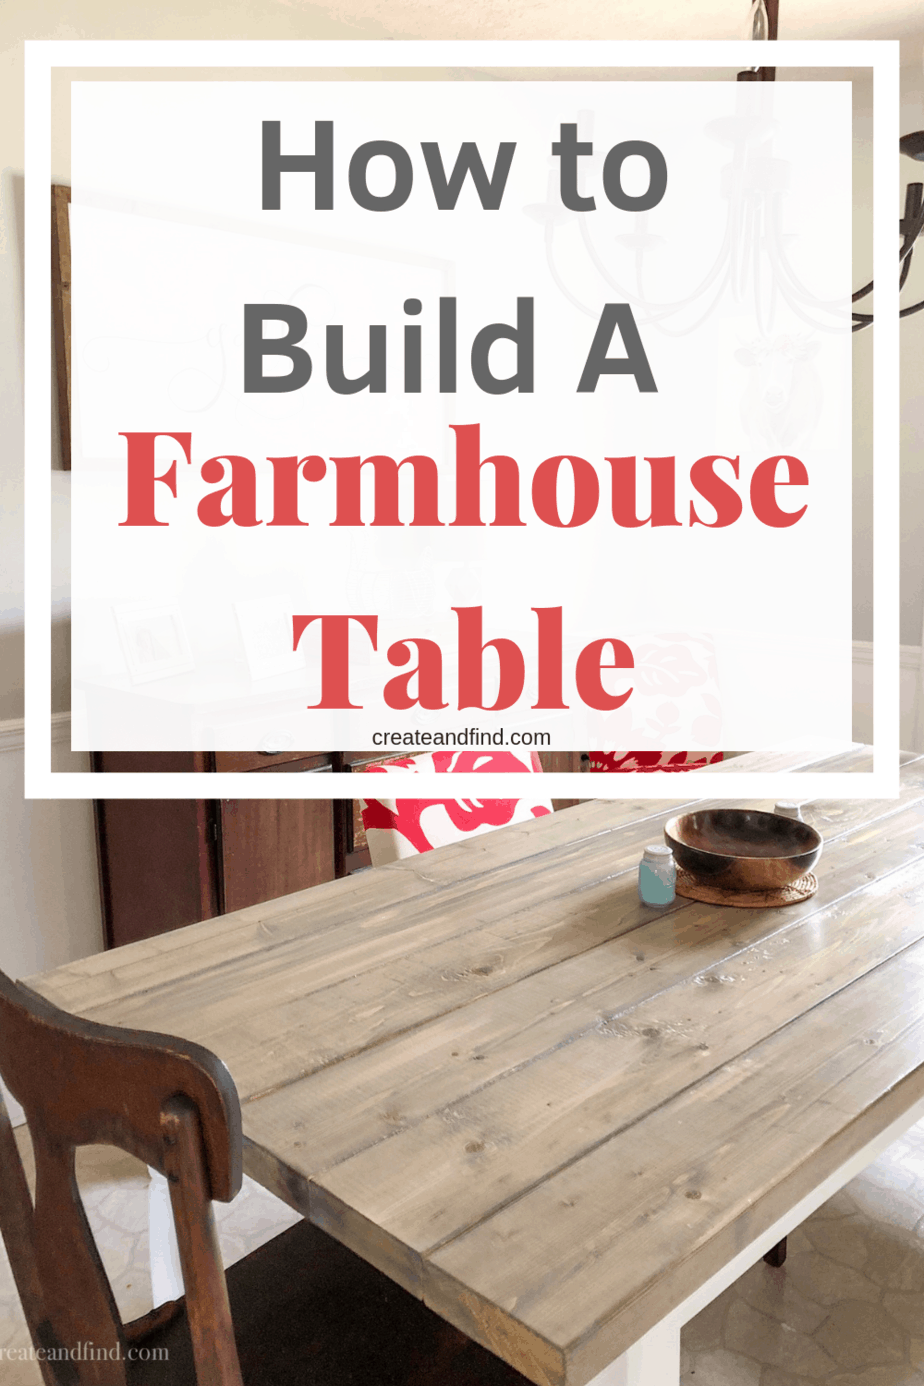 How to build a DIY Farmhouse Table - A detailed tutorial to show you how to make this DIY dining table project. I'll show you what to buy and how to put it all together #createandfind #diyfarmhousetable #diytable #diyprojects #diyfurniture #farmhousestyle